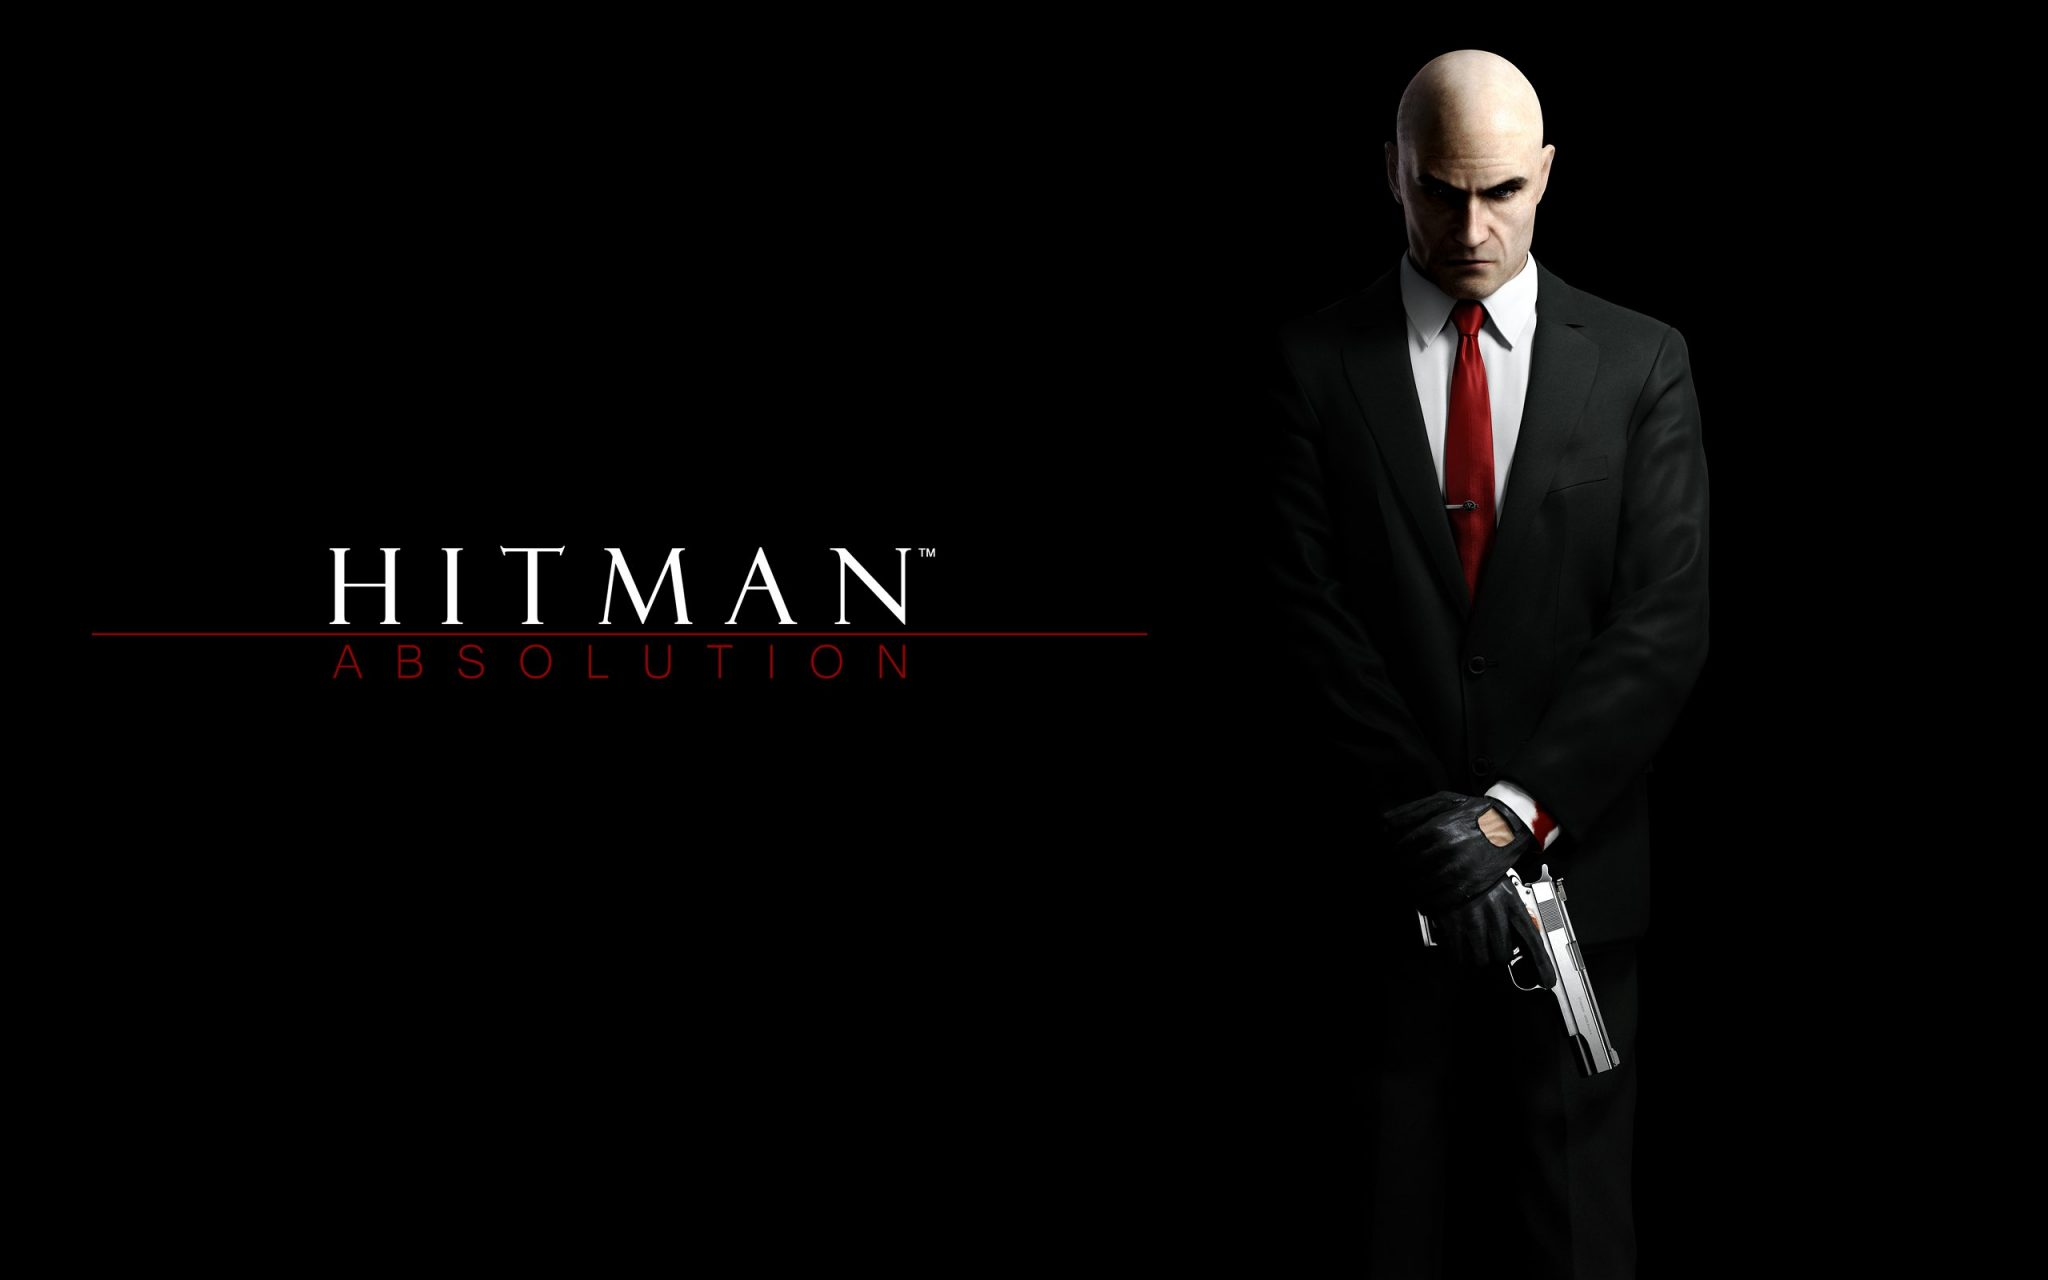 Hitman-Absolution-Evidence-Locations-Guide